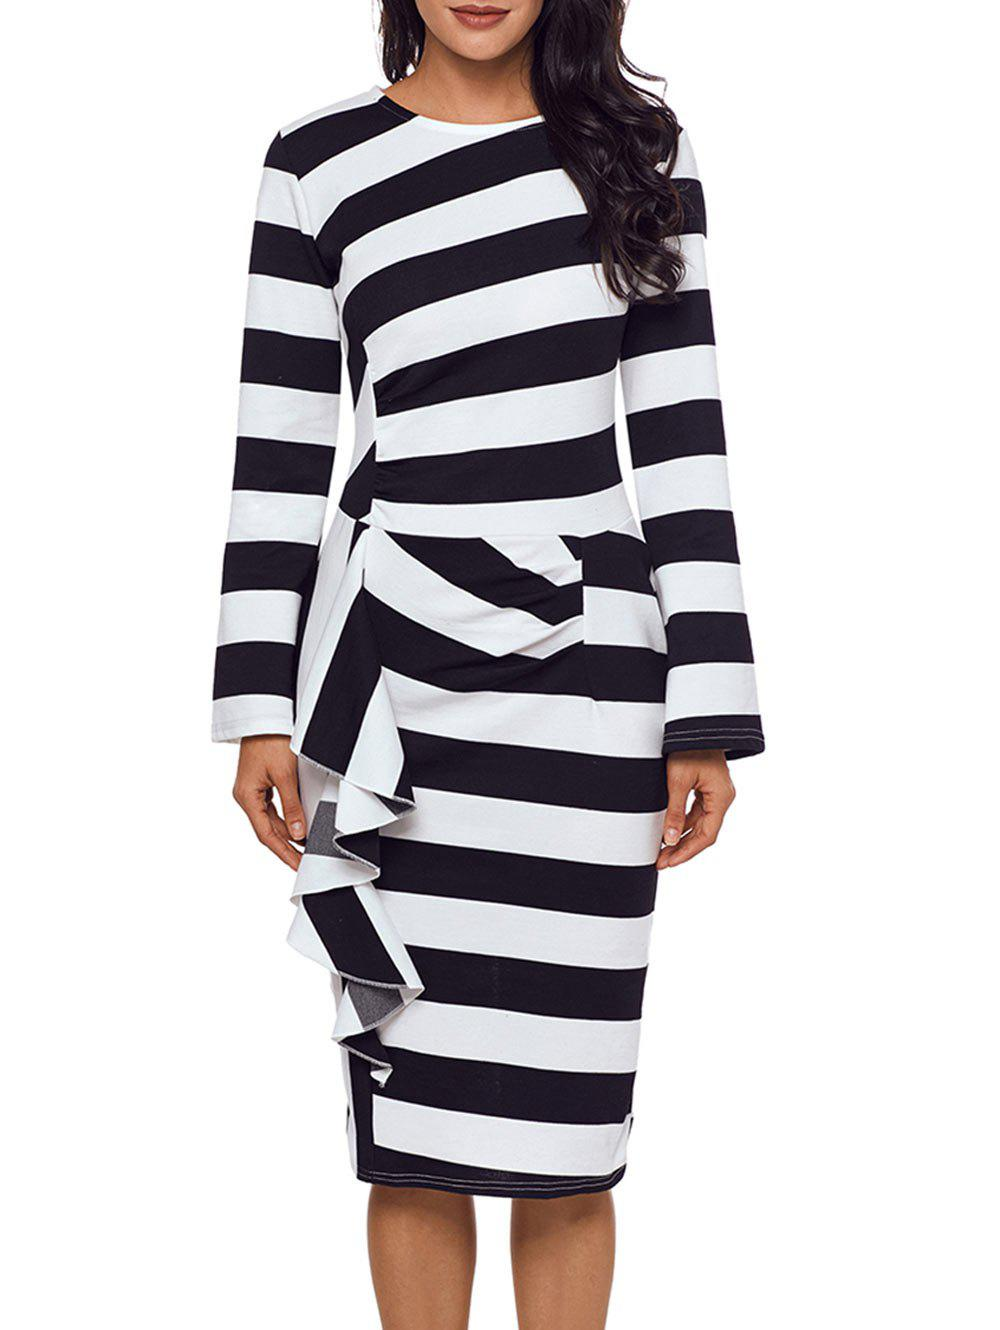 Stripe Ruffle Long Sleeve Dress - BLACK S